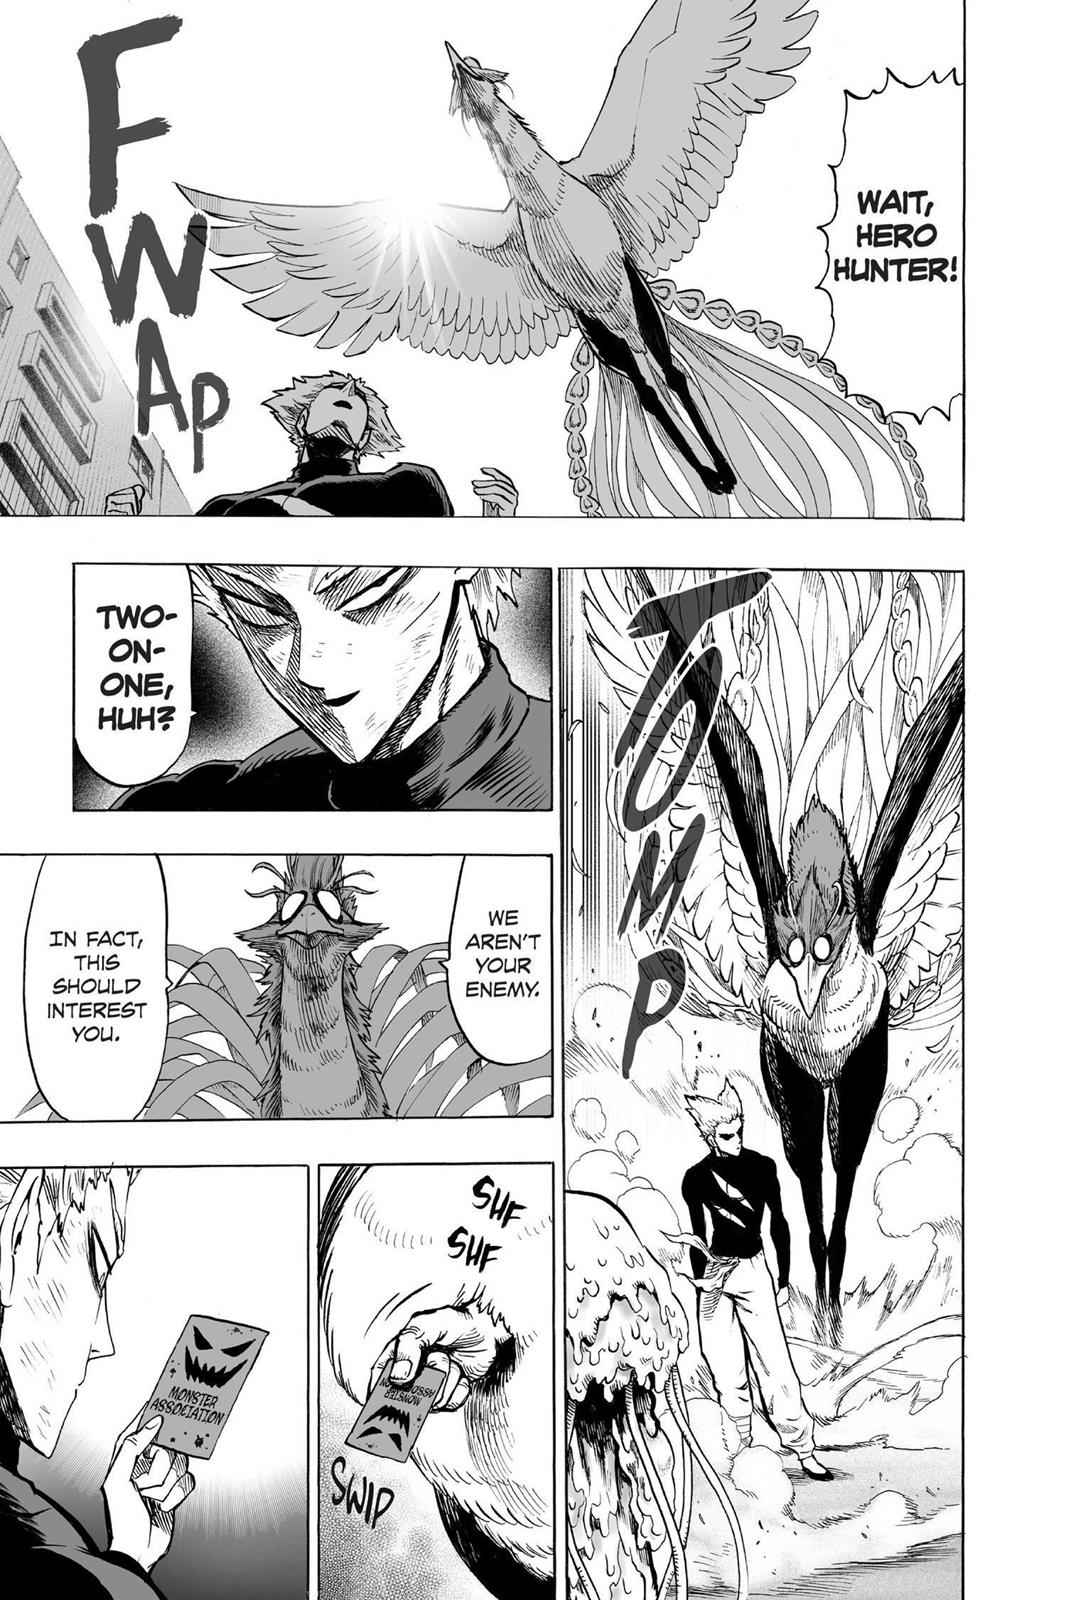 One-Punch Man Chapter 59 Page 7